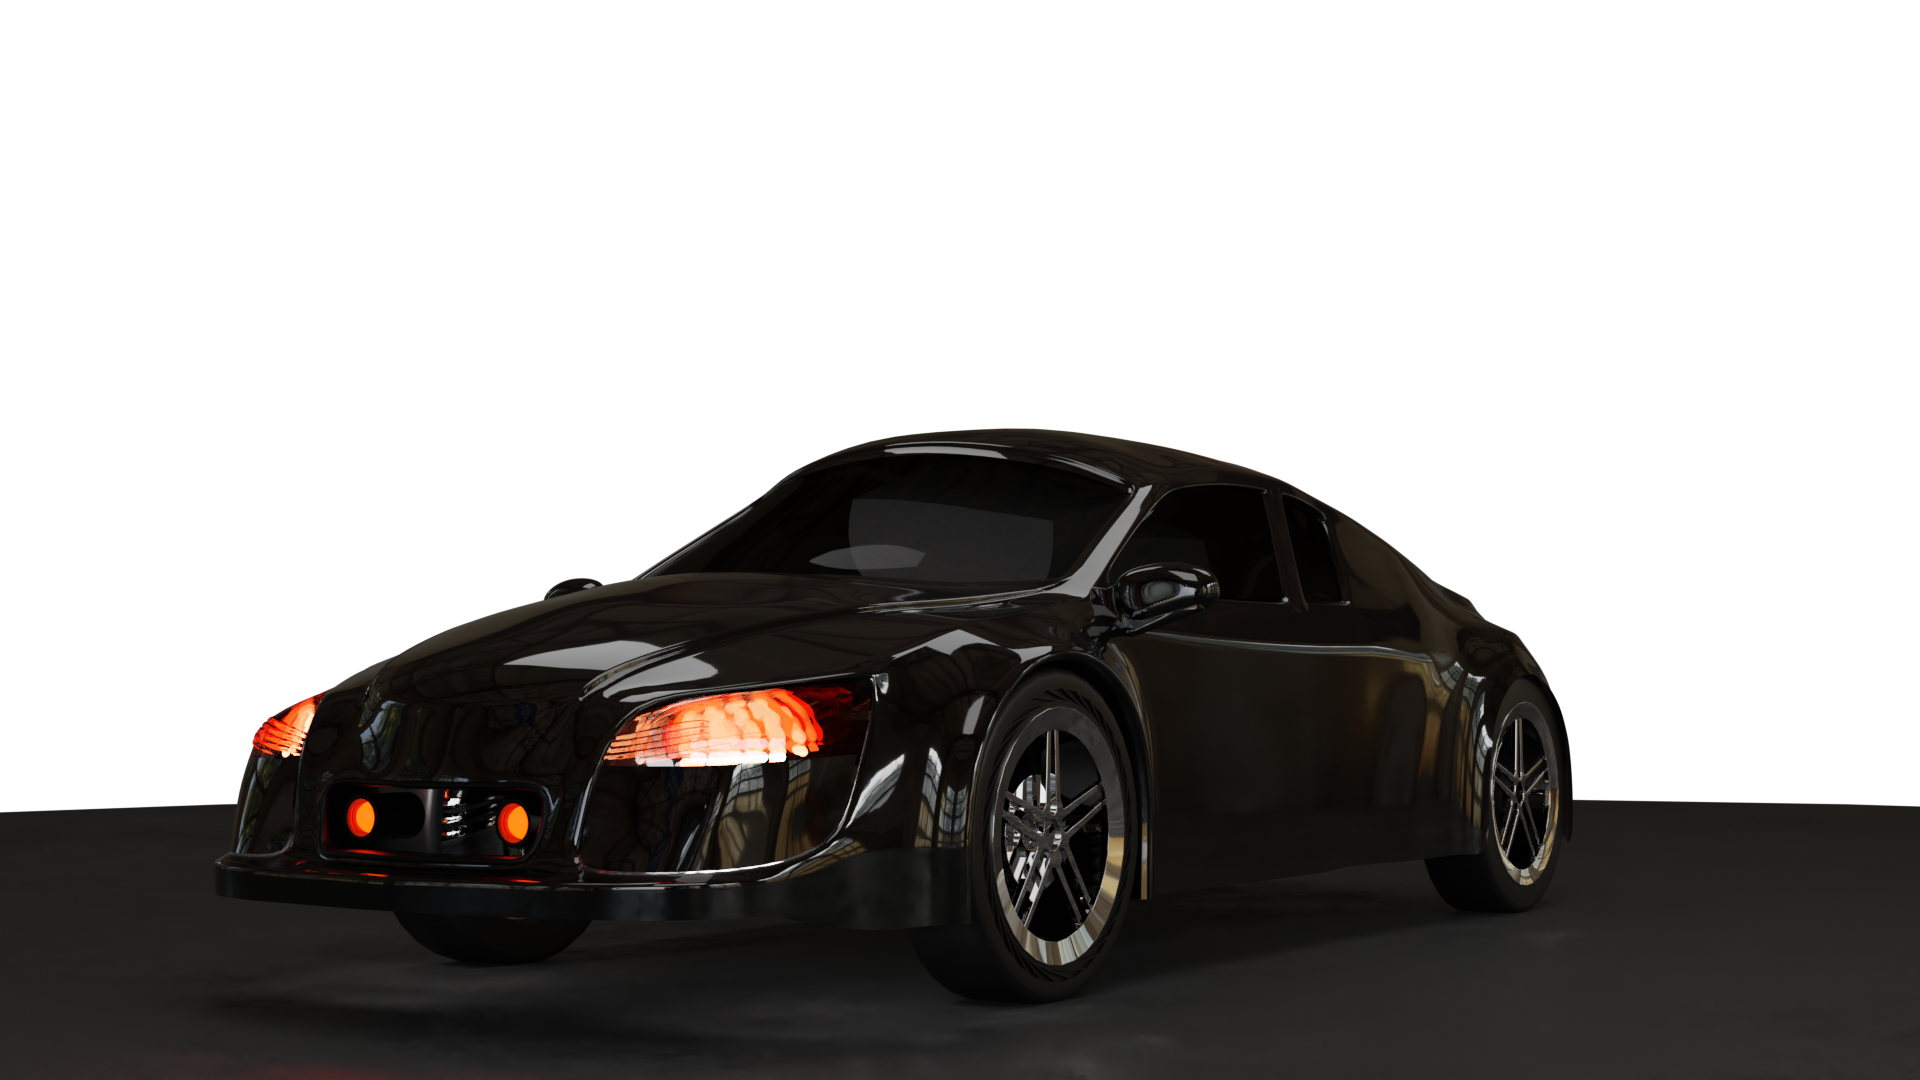 car in blender preview image 1